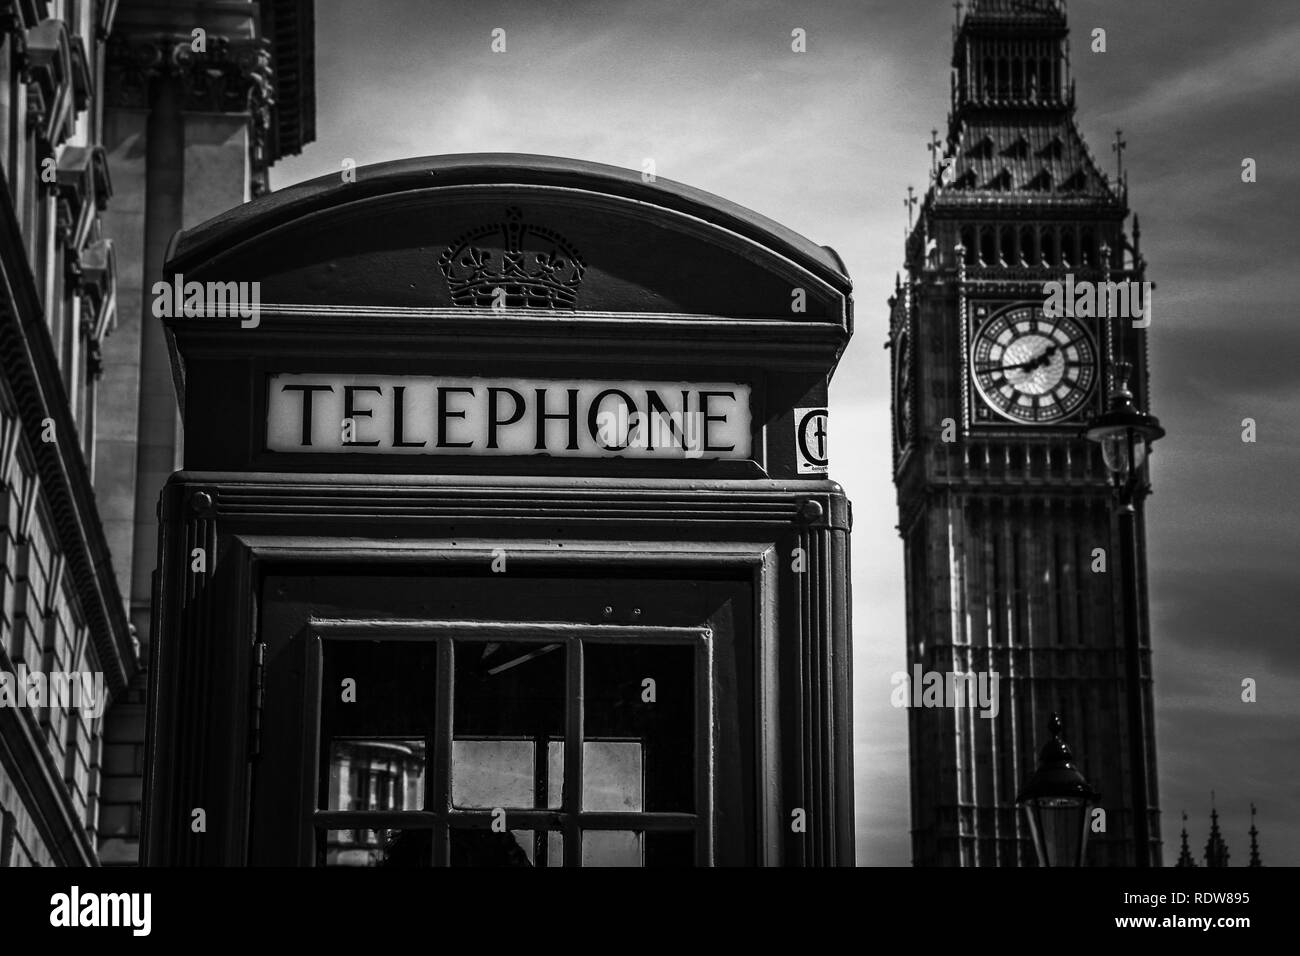 A typical British telephone box on the sidewalk with the famous Elizabeth Tower (Big Ben) in the background - London, UK - Stock Image